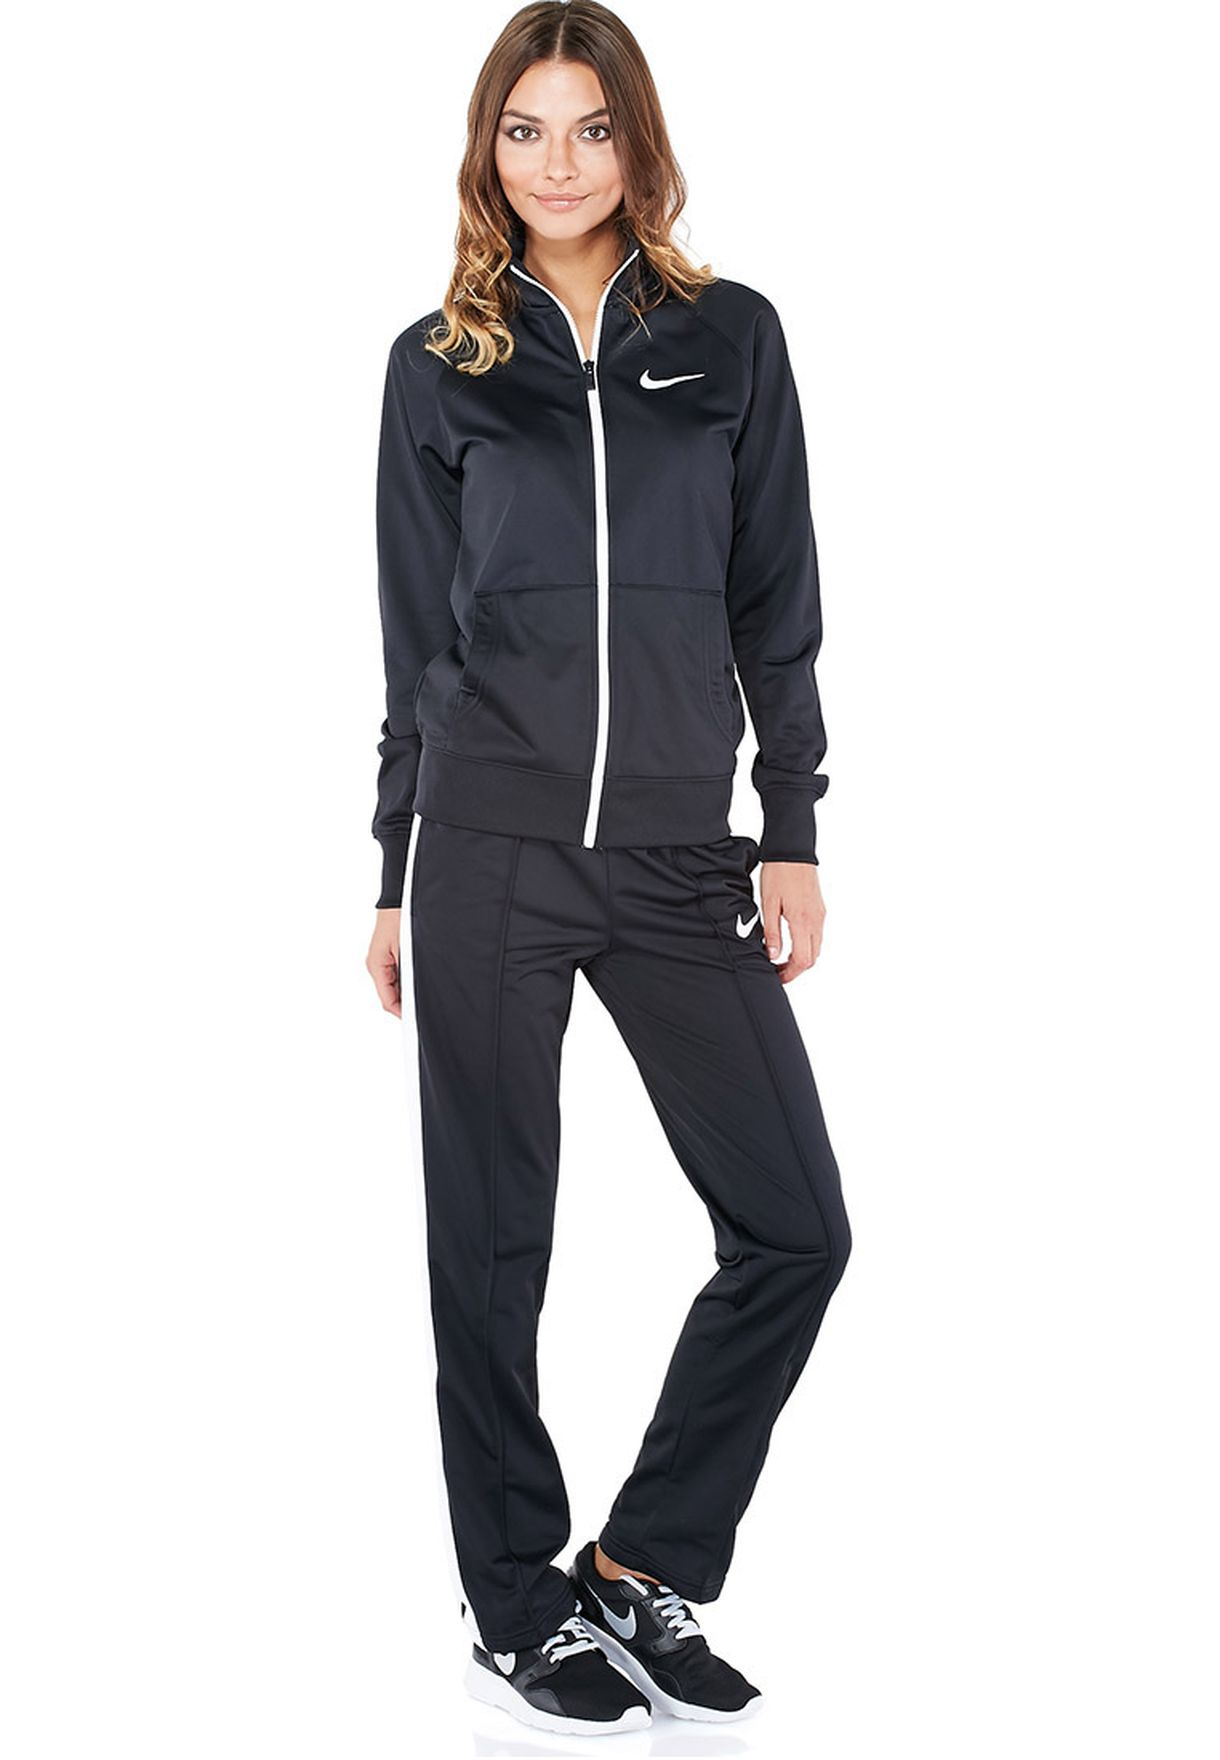 reputable site 64e27 df7c8 Shop Nike black Polywarp Raglan Warm Up Track Suit 639138-010 for Women in  Qatar - NI727AT42PUR